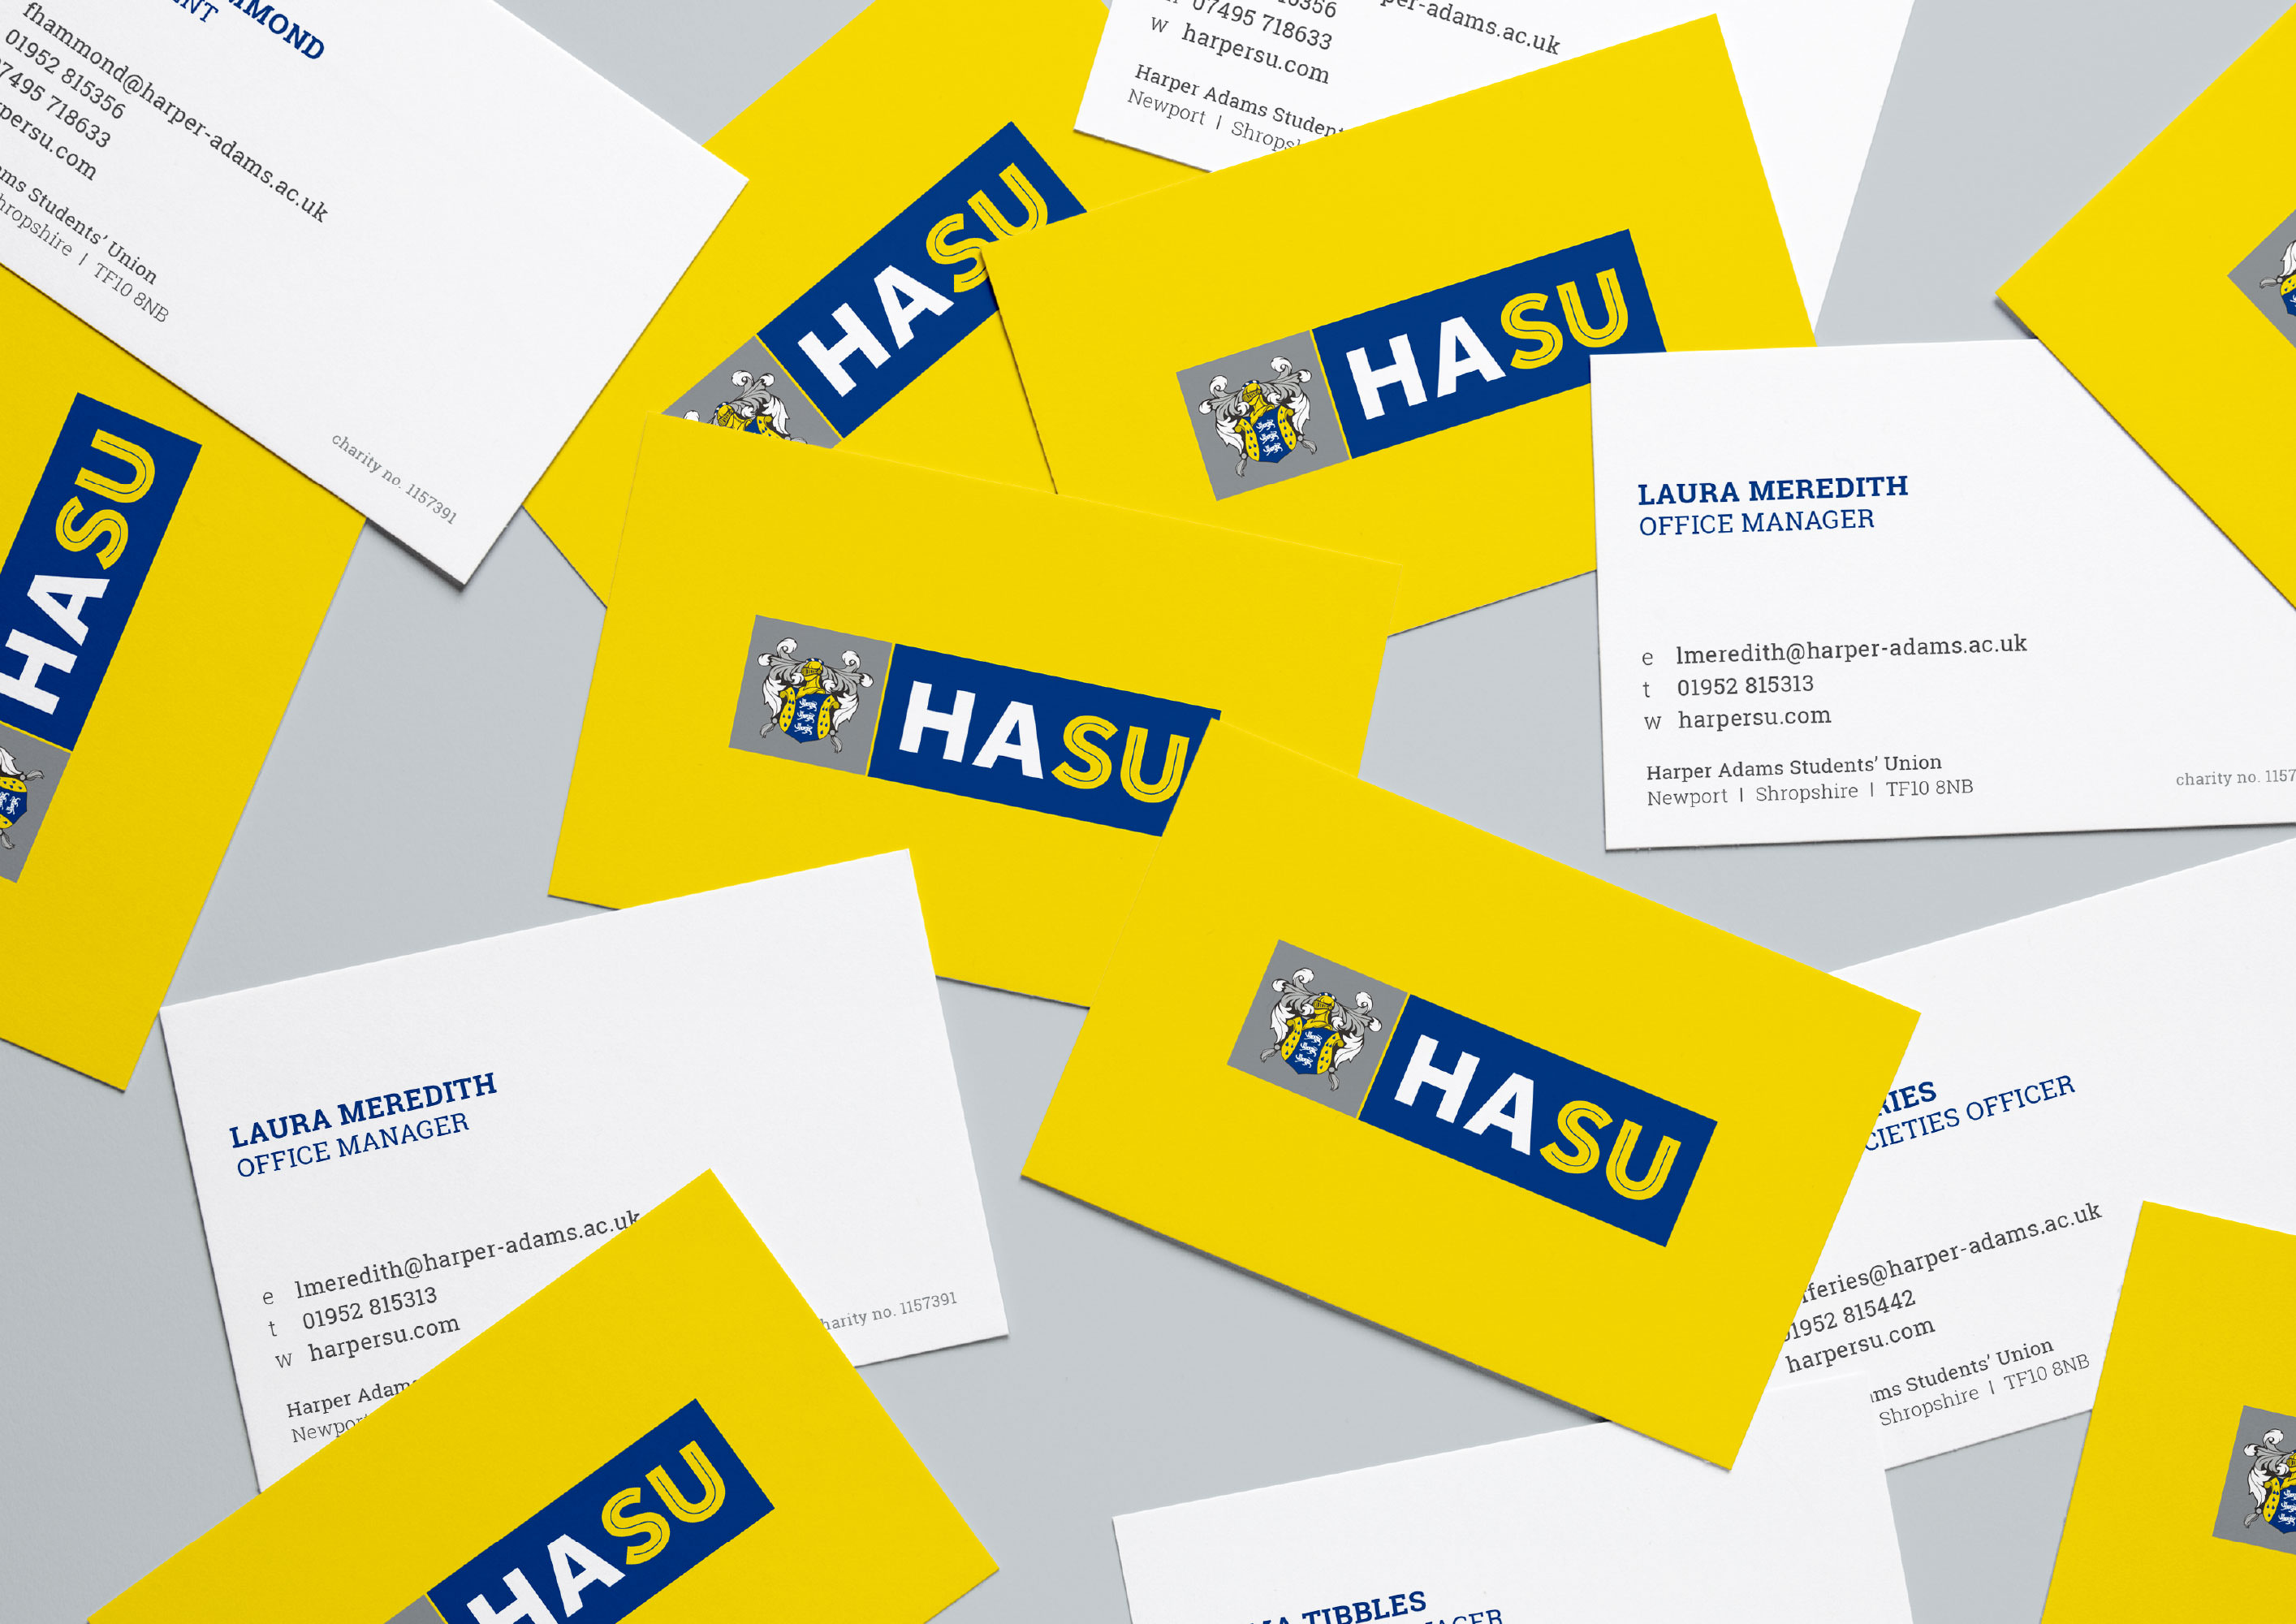 hasu-business-cards